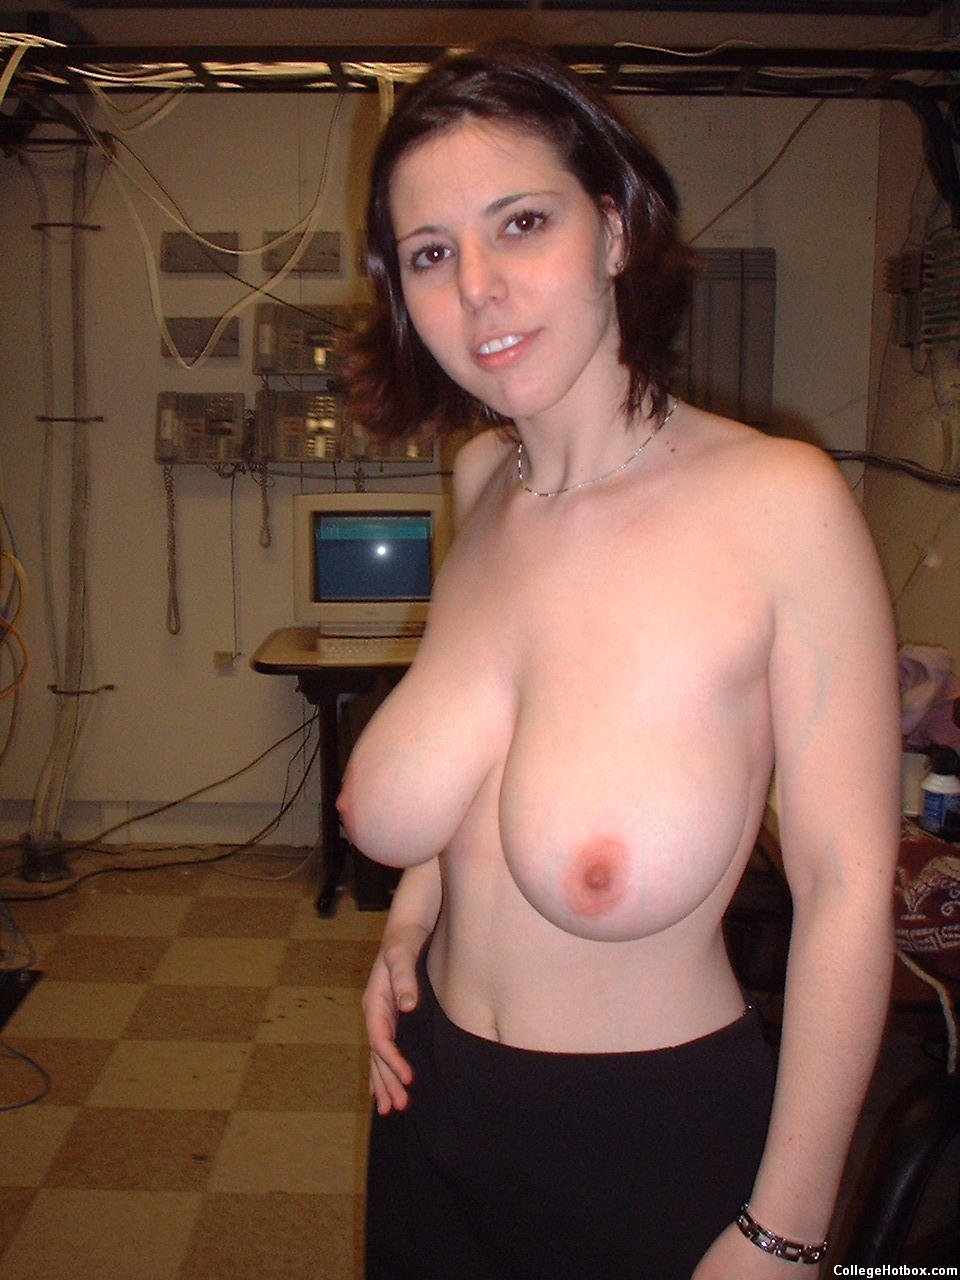 Authoritative point Amateur girls with large breasts fucked question